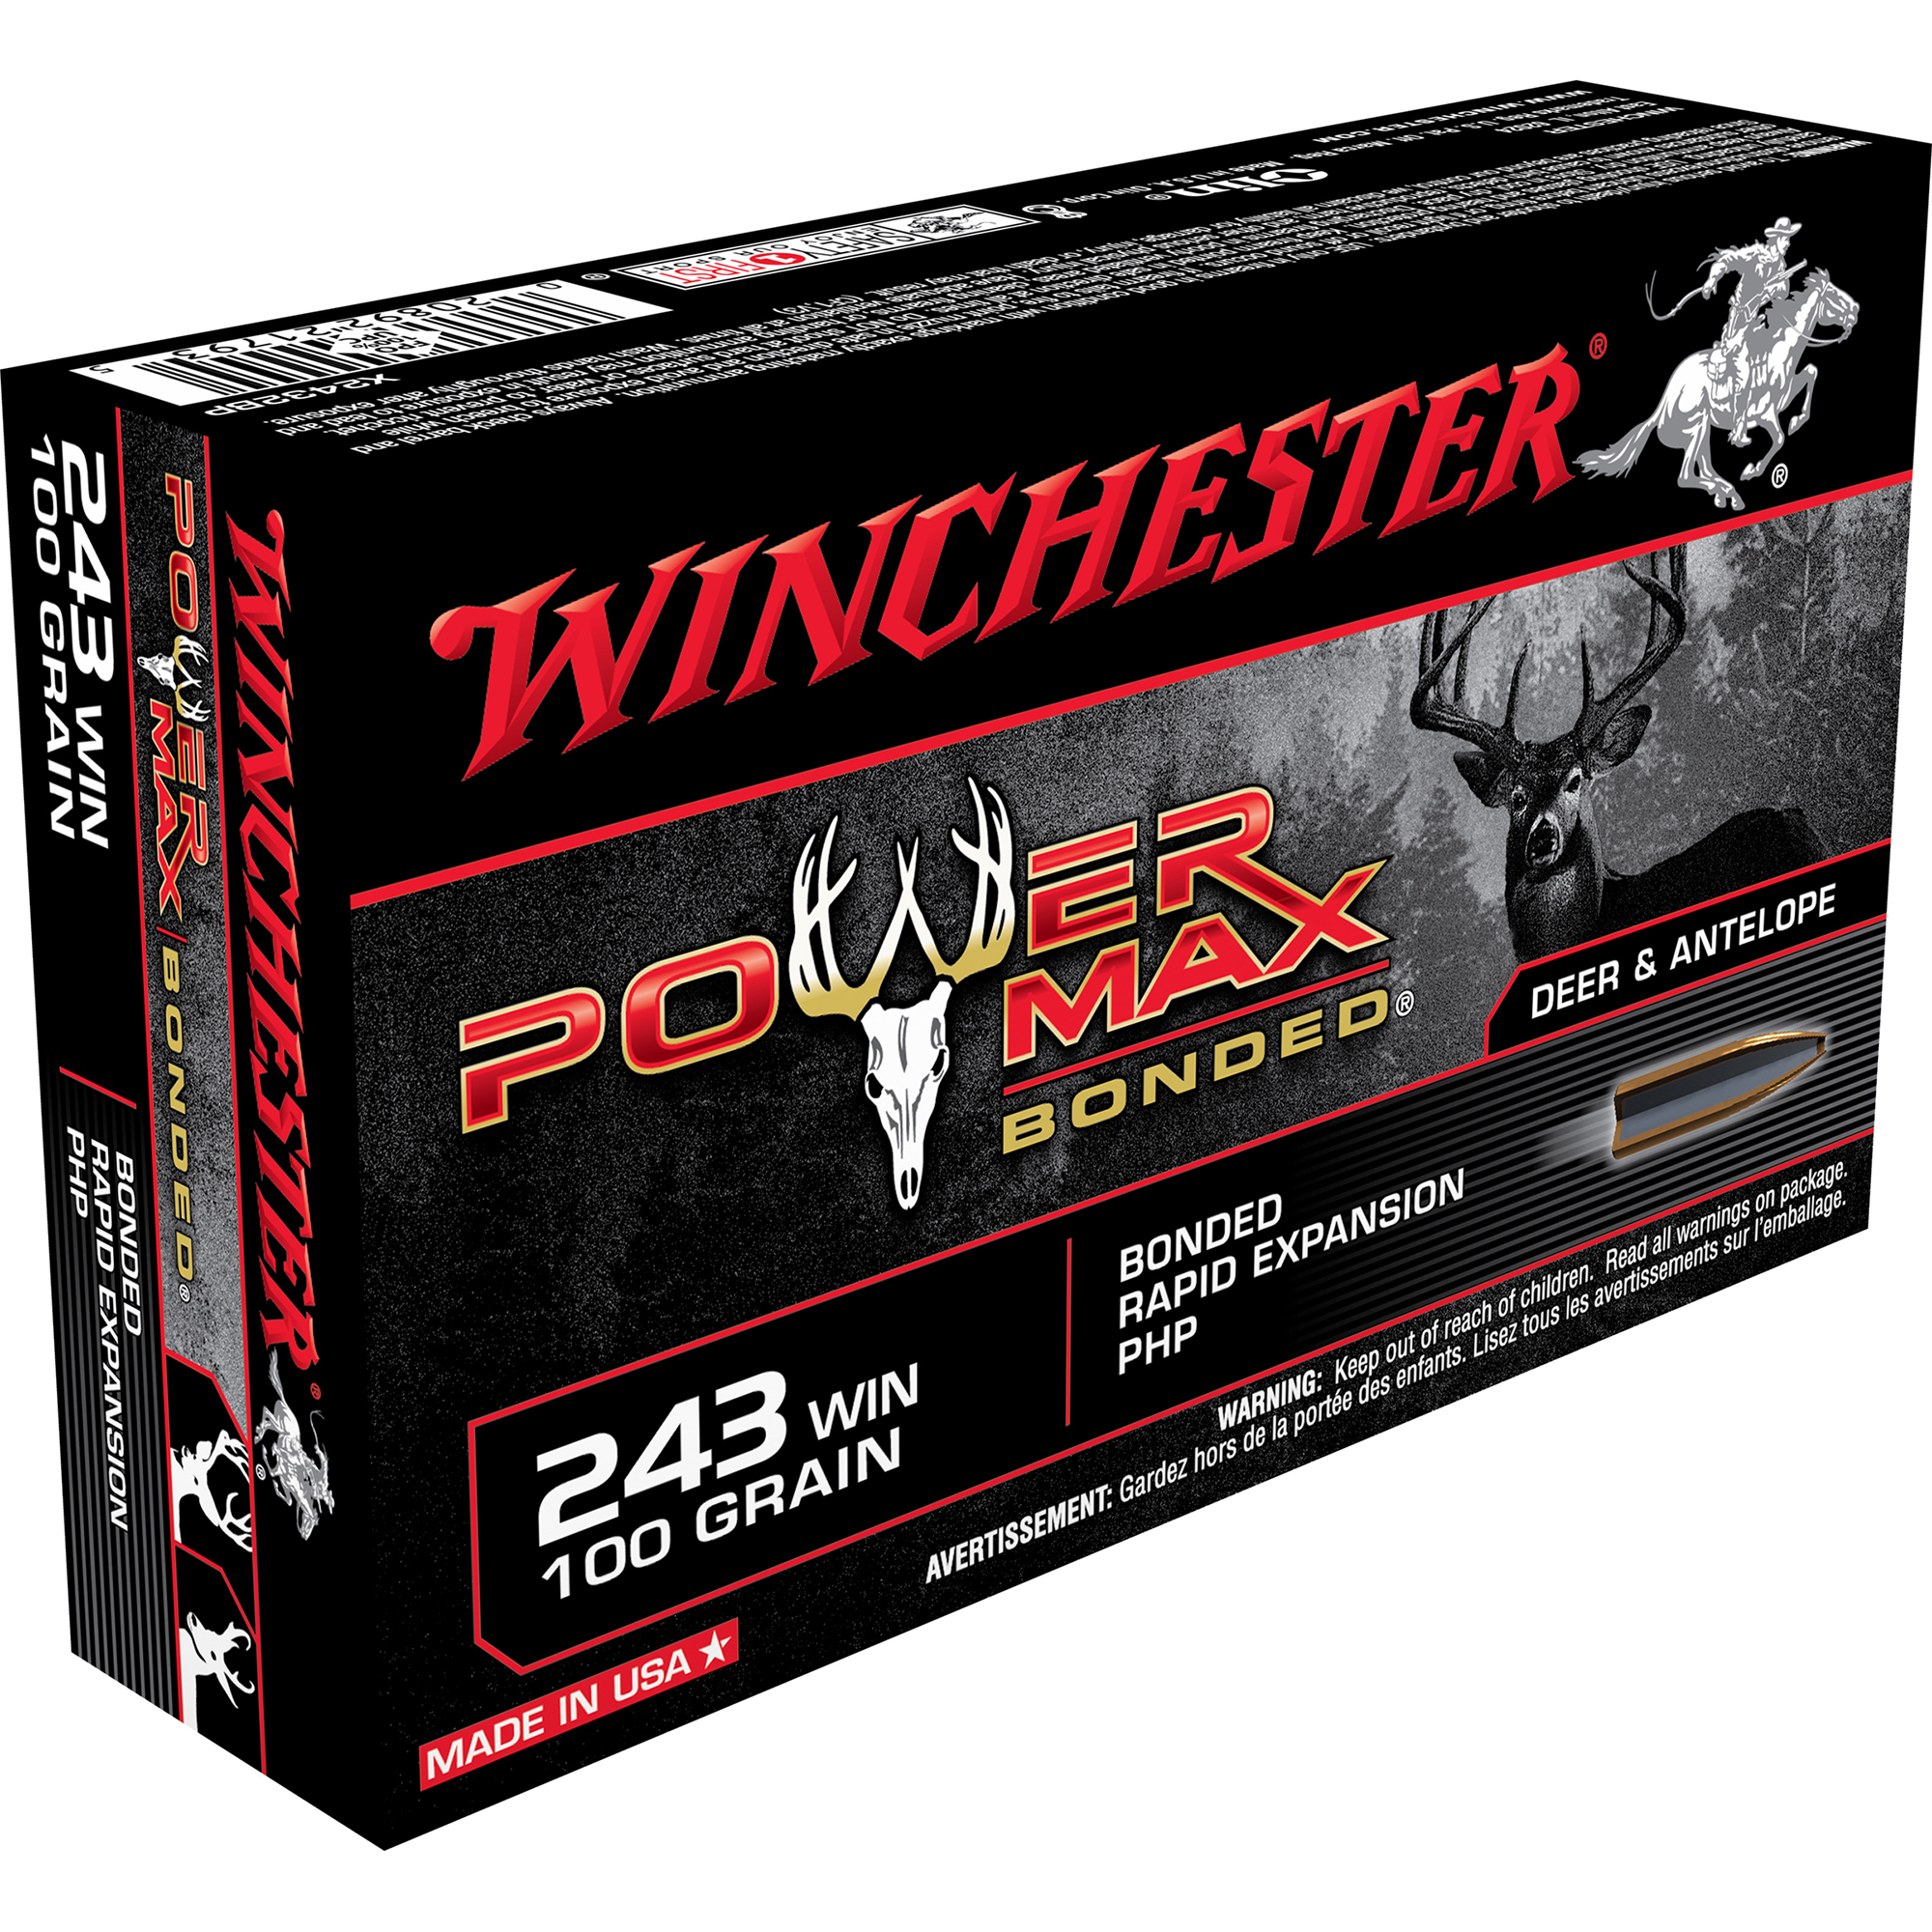 Winchester Super-X Power Max Bonded Rifle Ammo, .243 Win, 100-gr, PHP